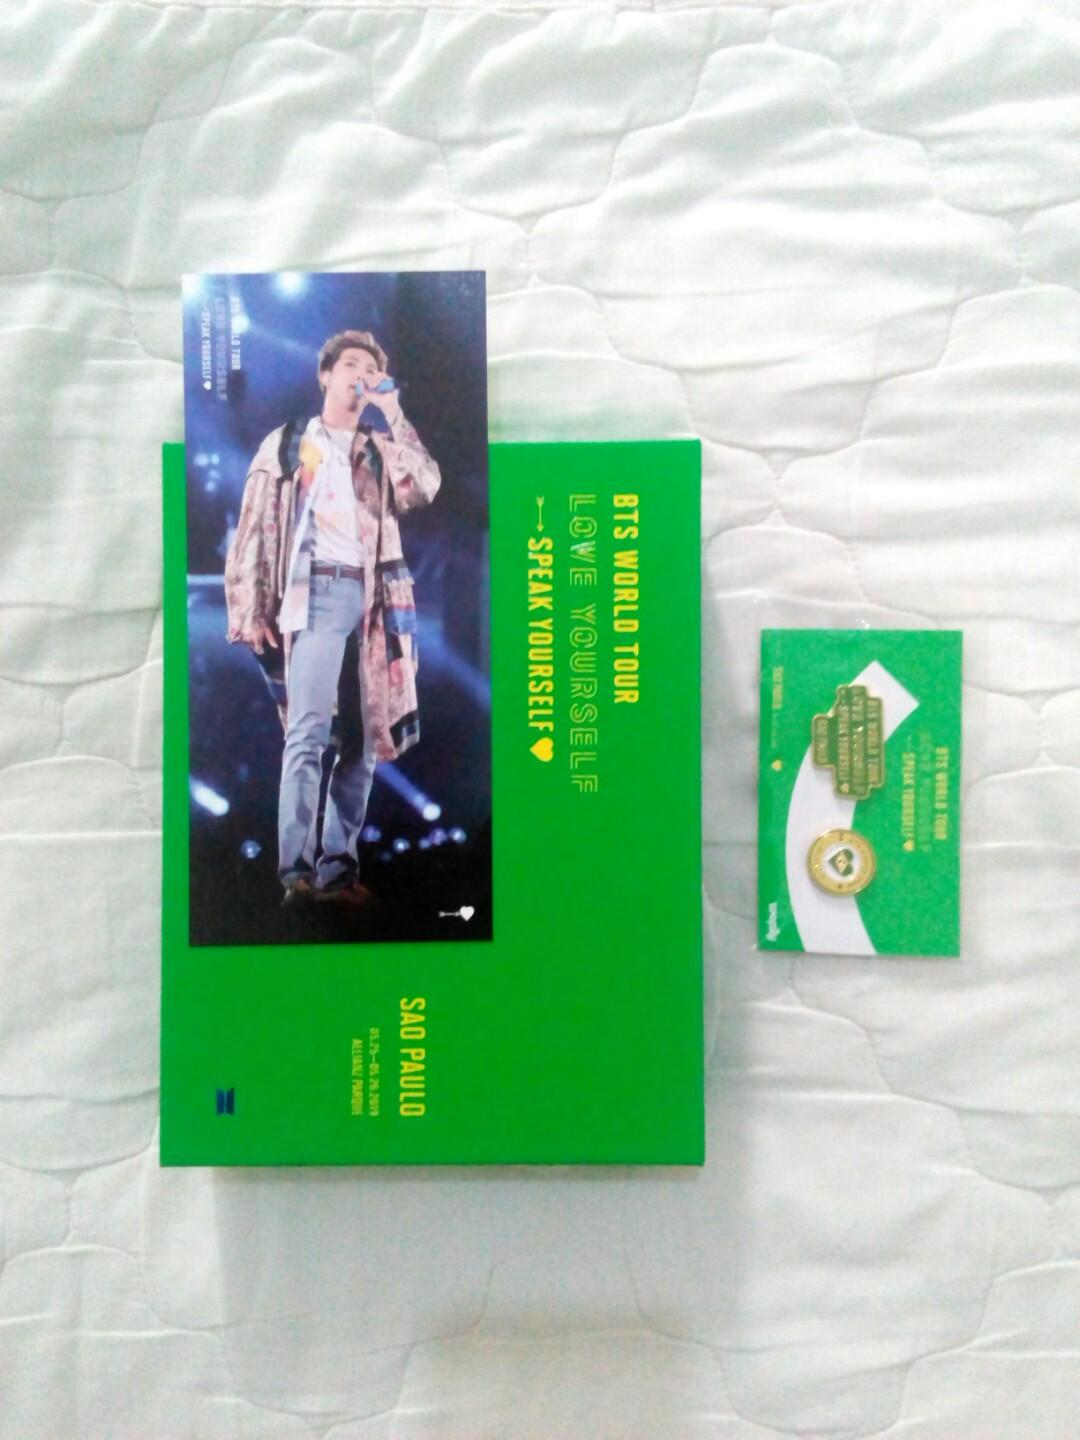 BTS SAO PAULO DVD FULL SET + NAMJOON BOOKMARK AND PREORDER GIFT